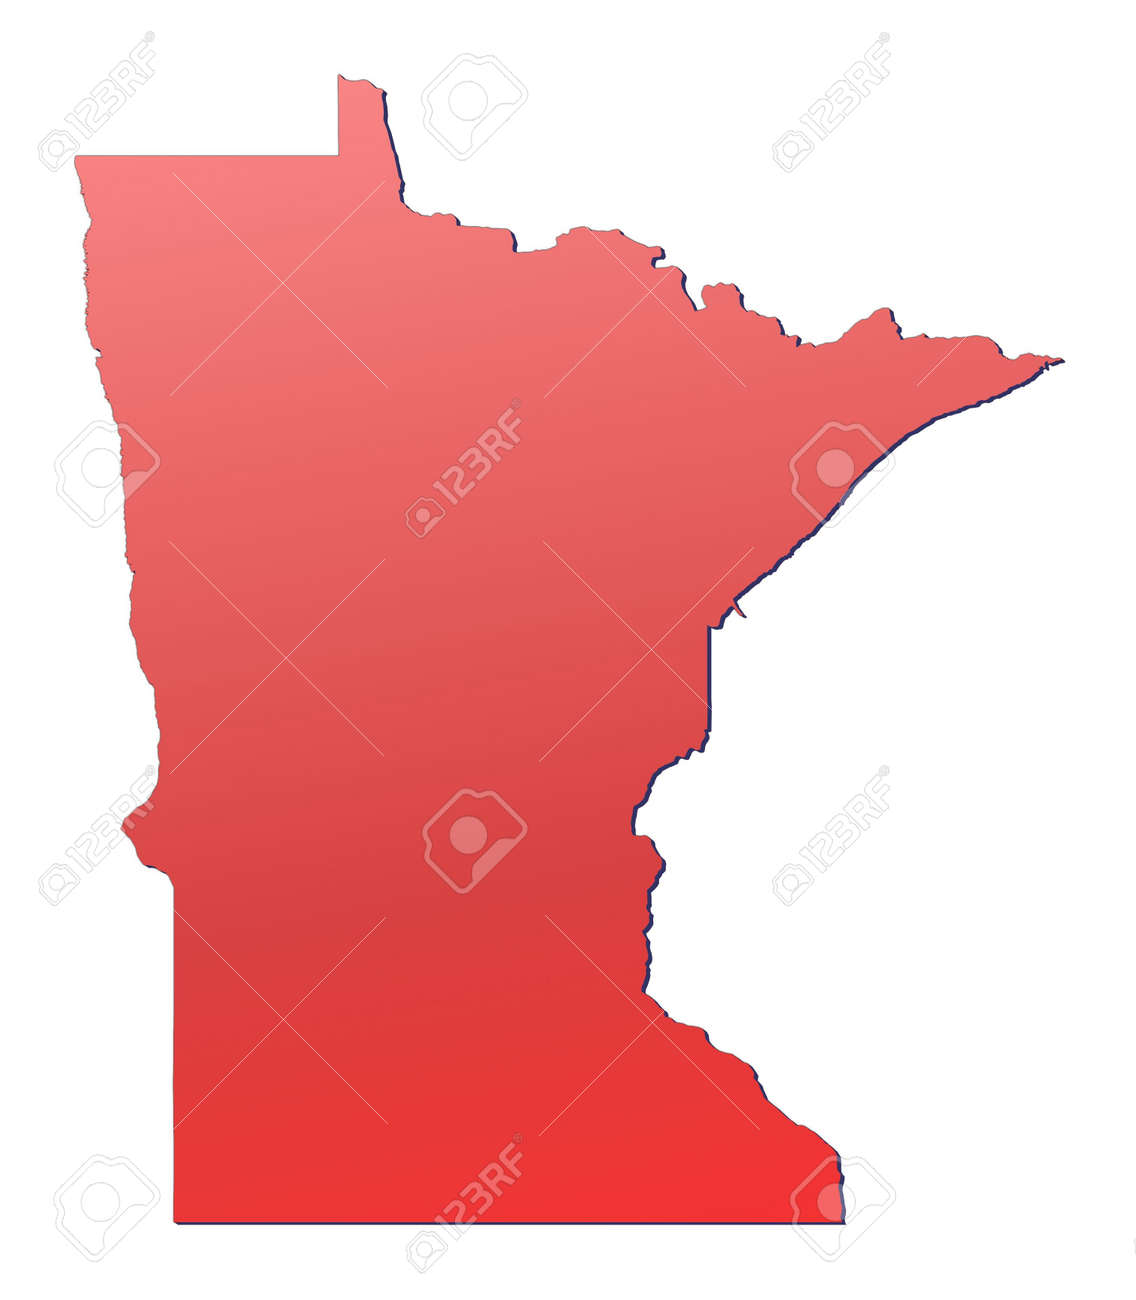 Minnesota USA Map Filled With Red Gradient Mercator Projection - Minnesota usa map